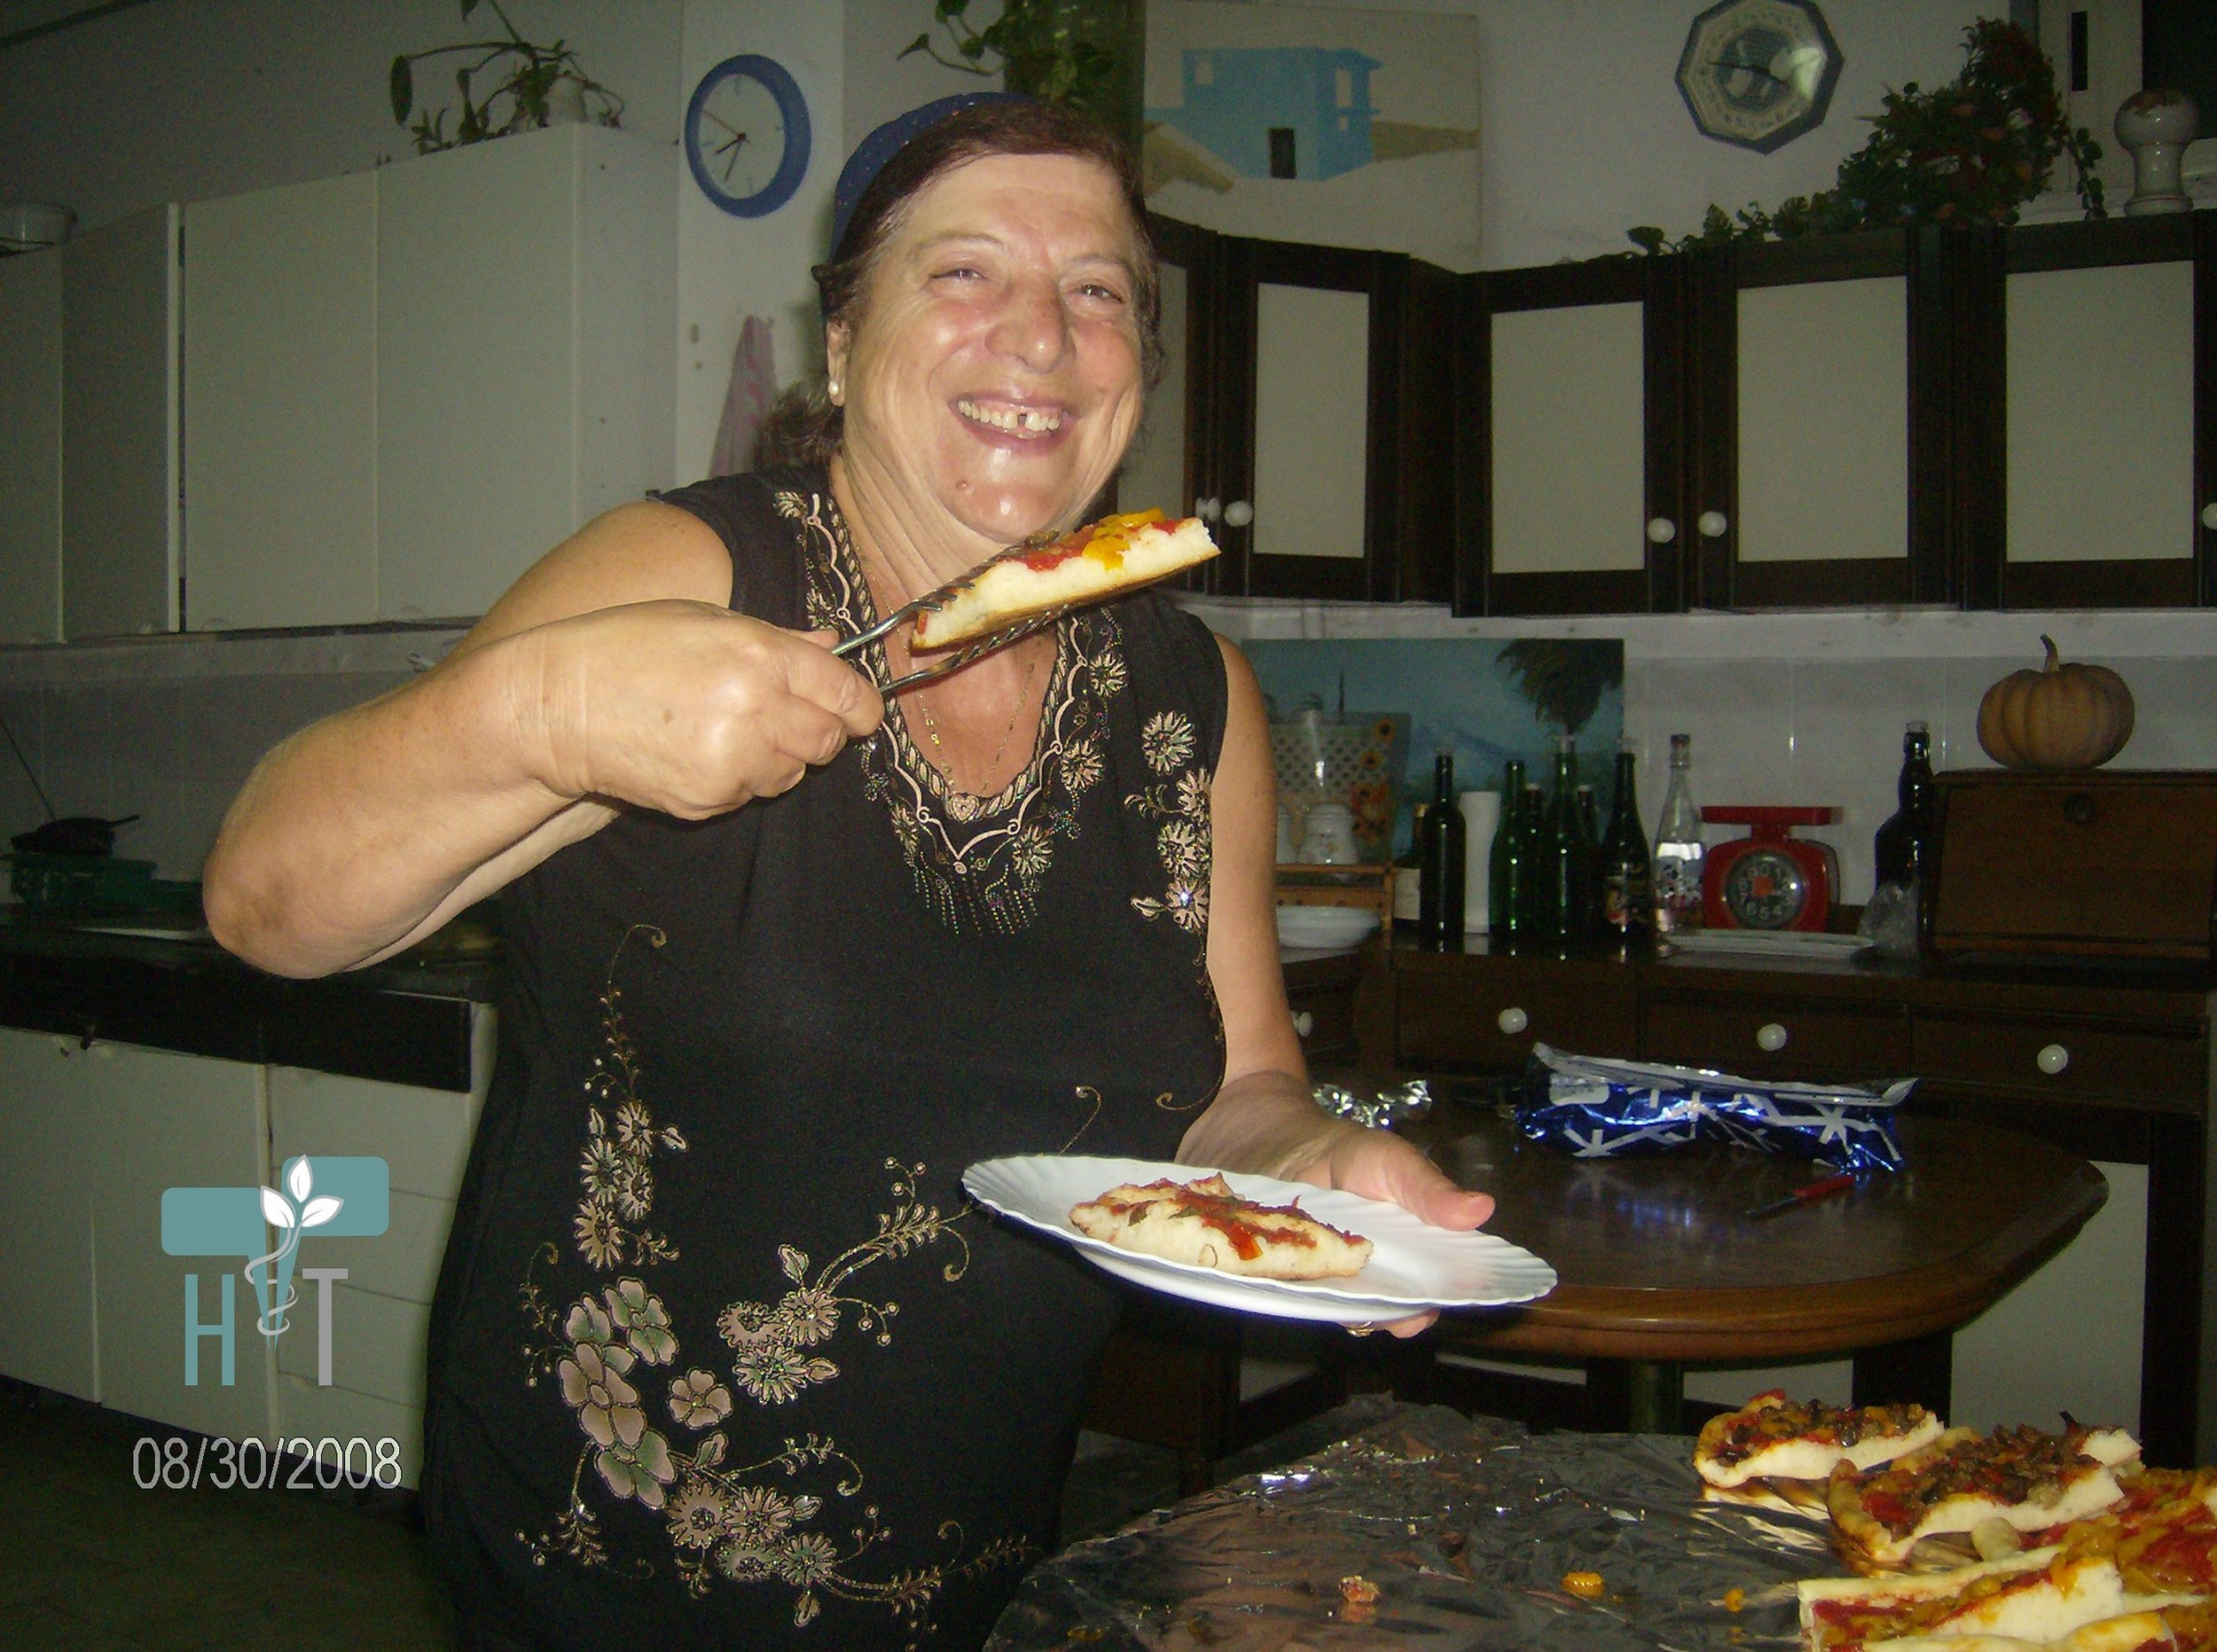 My perfectly wonderful Italian landlady in Naples, Titi, cooking her homemade pizza.